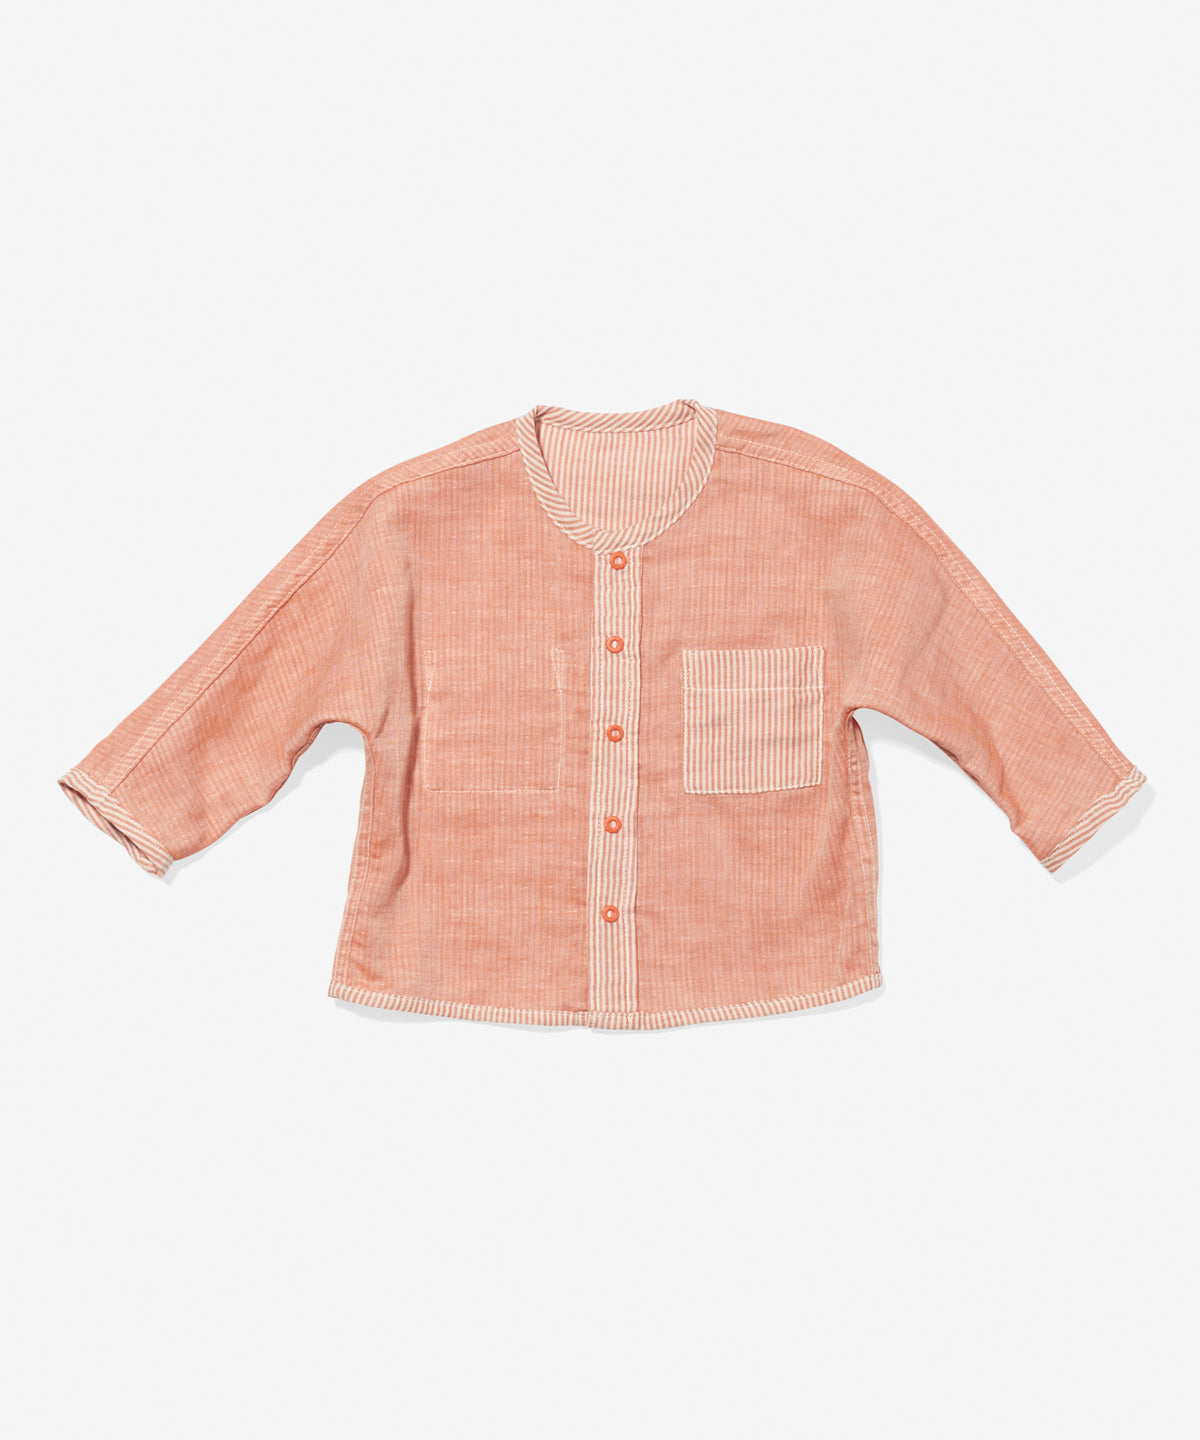 Jack Lee Baby Shirt, Melon Stripe